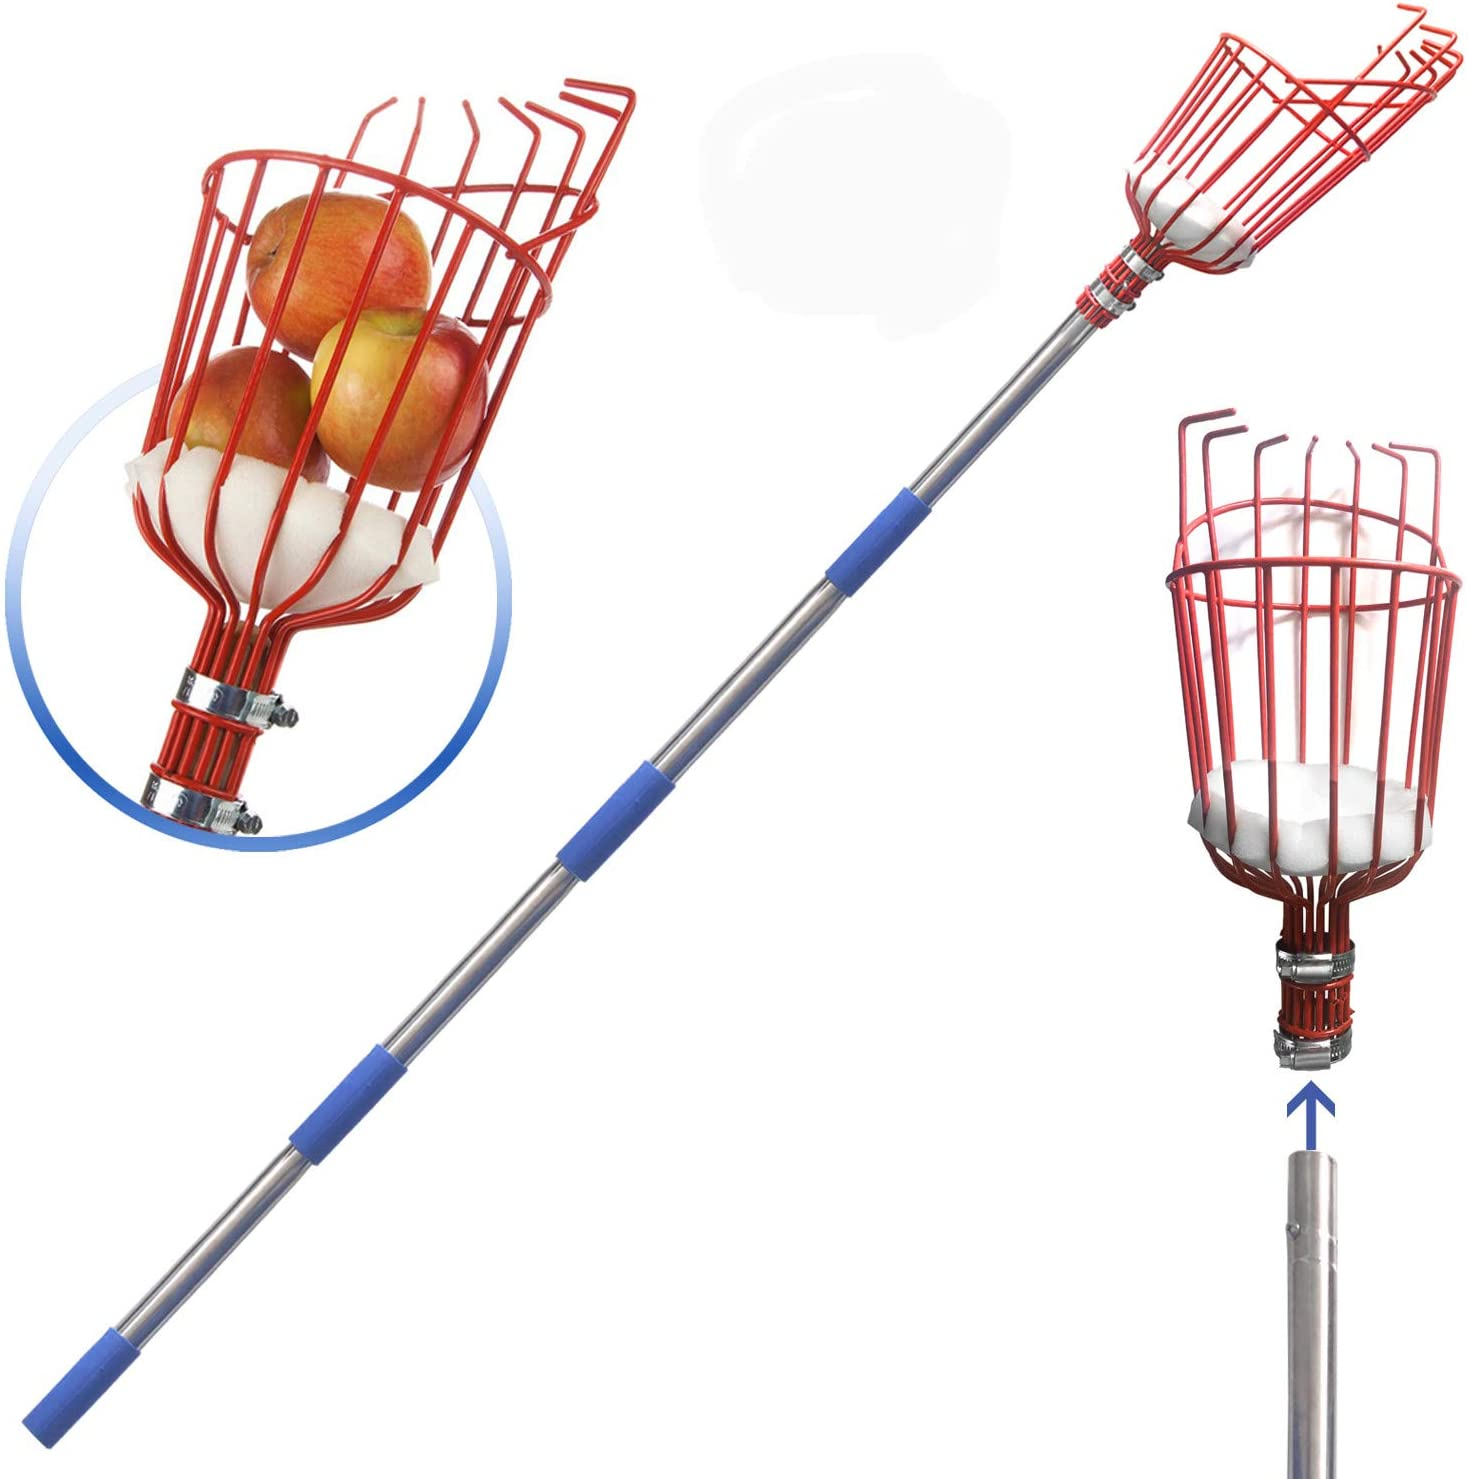 SANDEGOO Fruit Picker Tool, 10-Foot Fruit Picker with Light-Weight Aluminum Telescoping Pole, Fruit Picking Equipment for Getting Apple Oranges and Fruits Tree